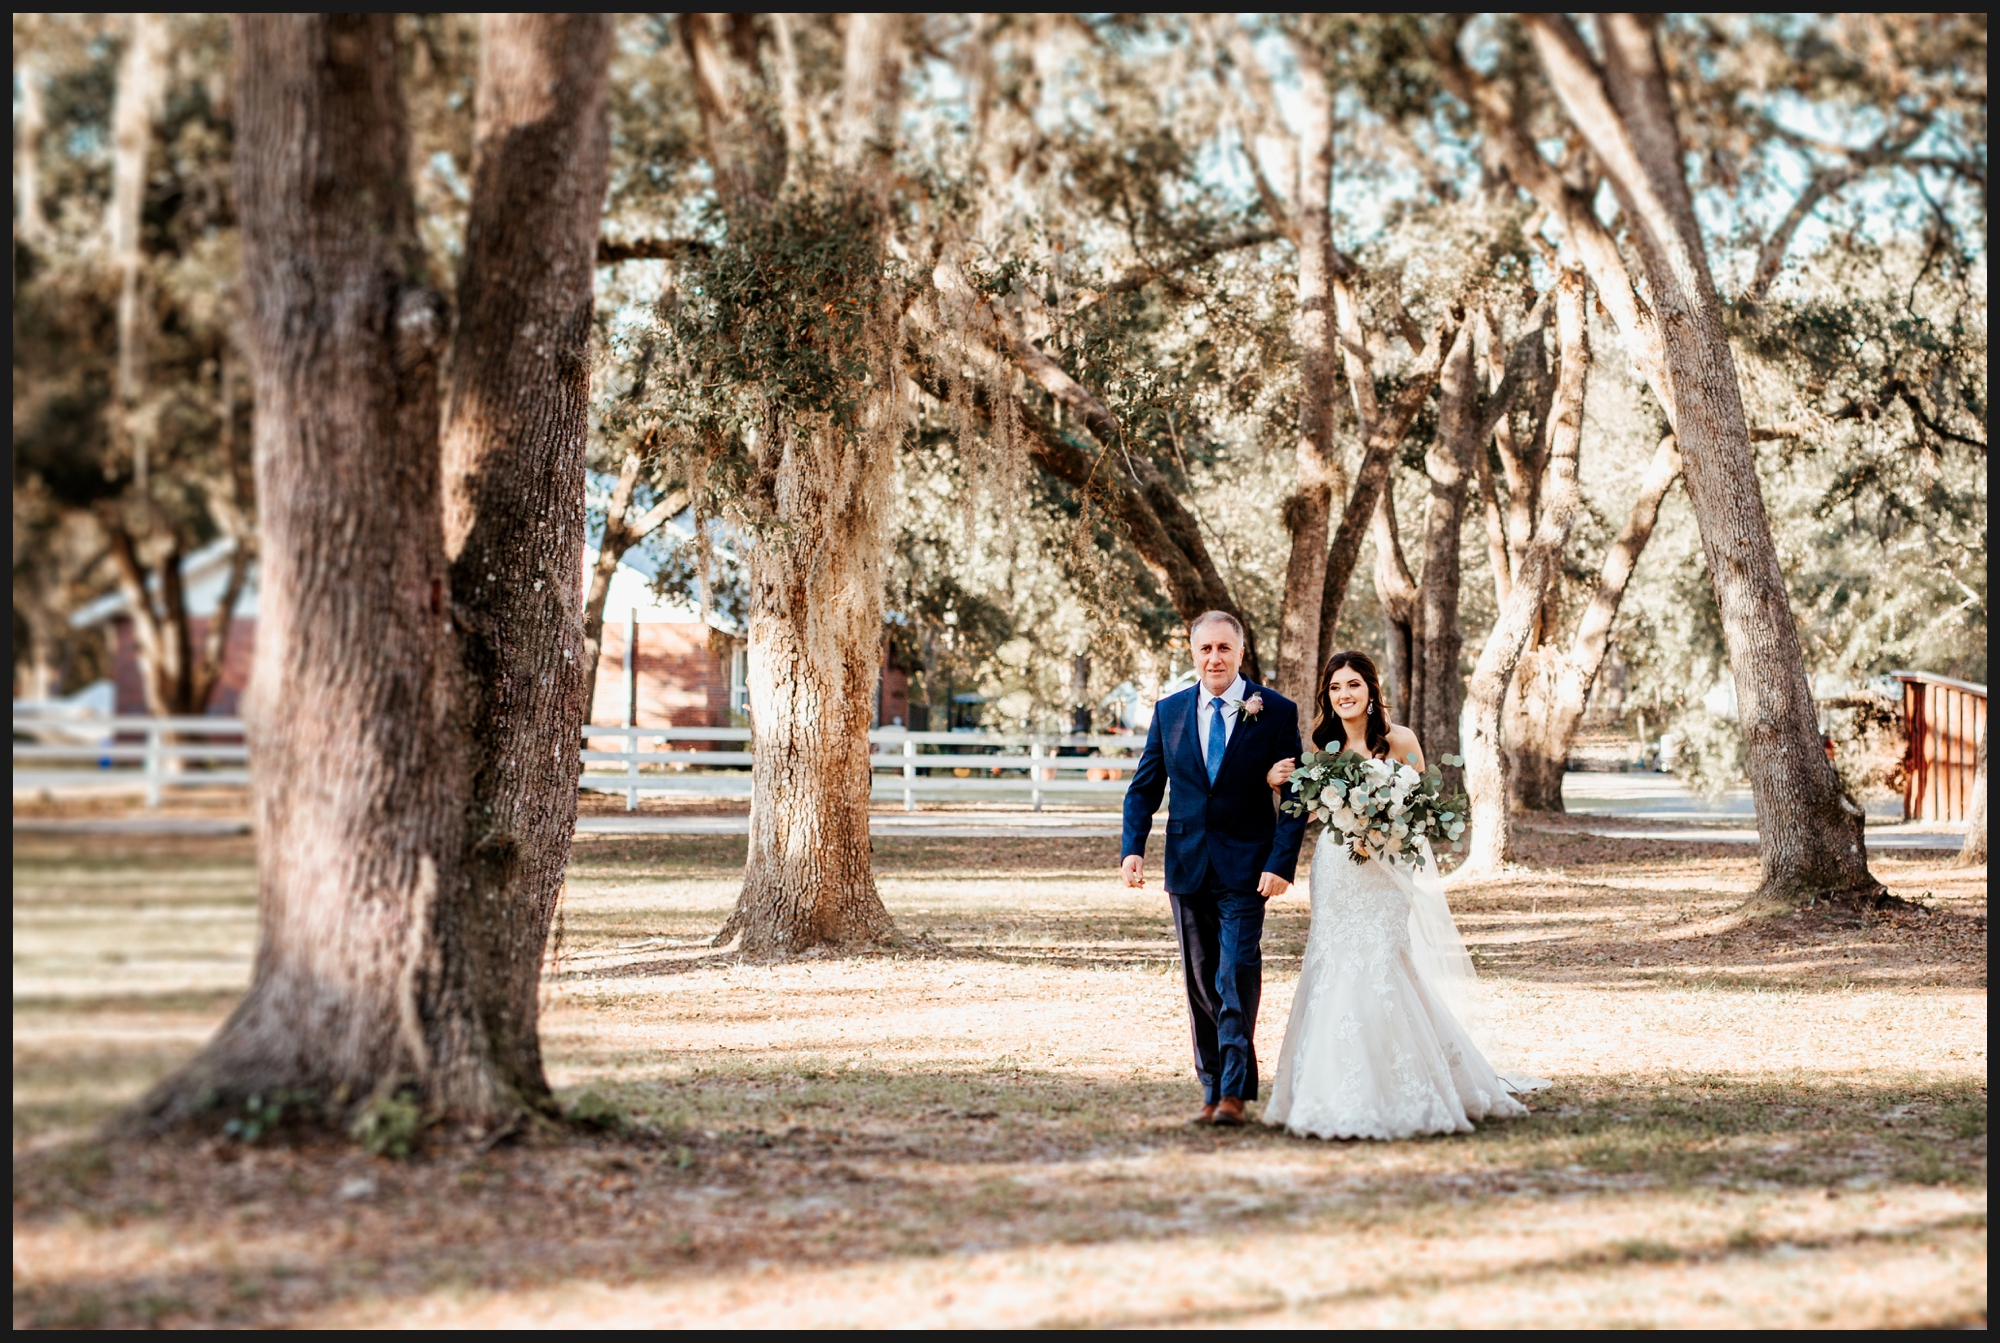 Orlando-Wedding-Photographer-destination-wedding-photographer-florida-wedding-photographer-bohemian-wedding-photographer_1074.jpg